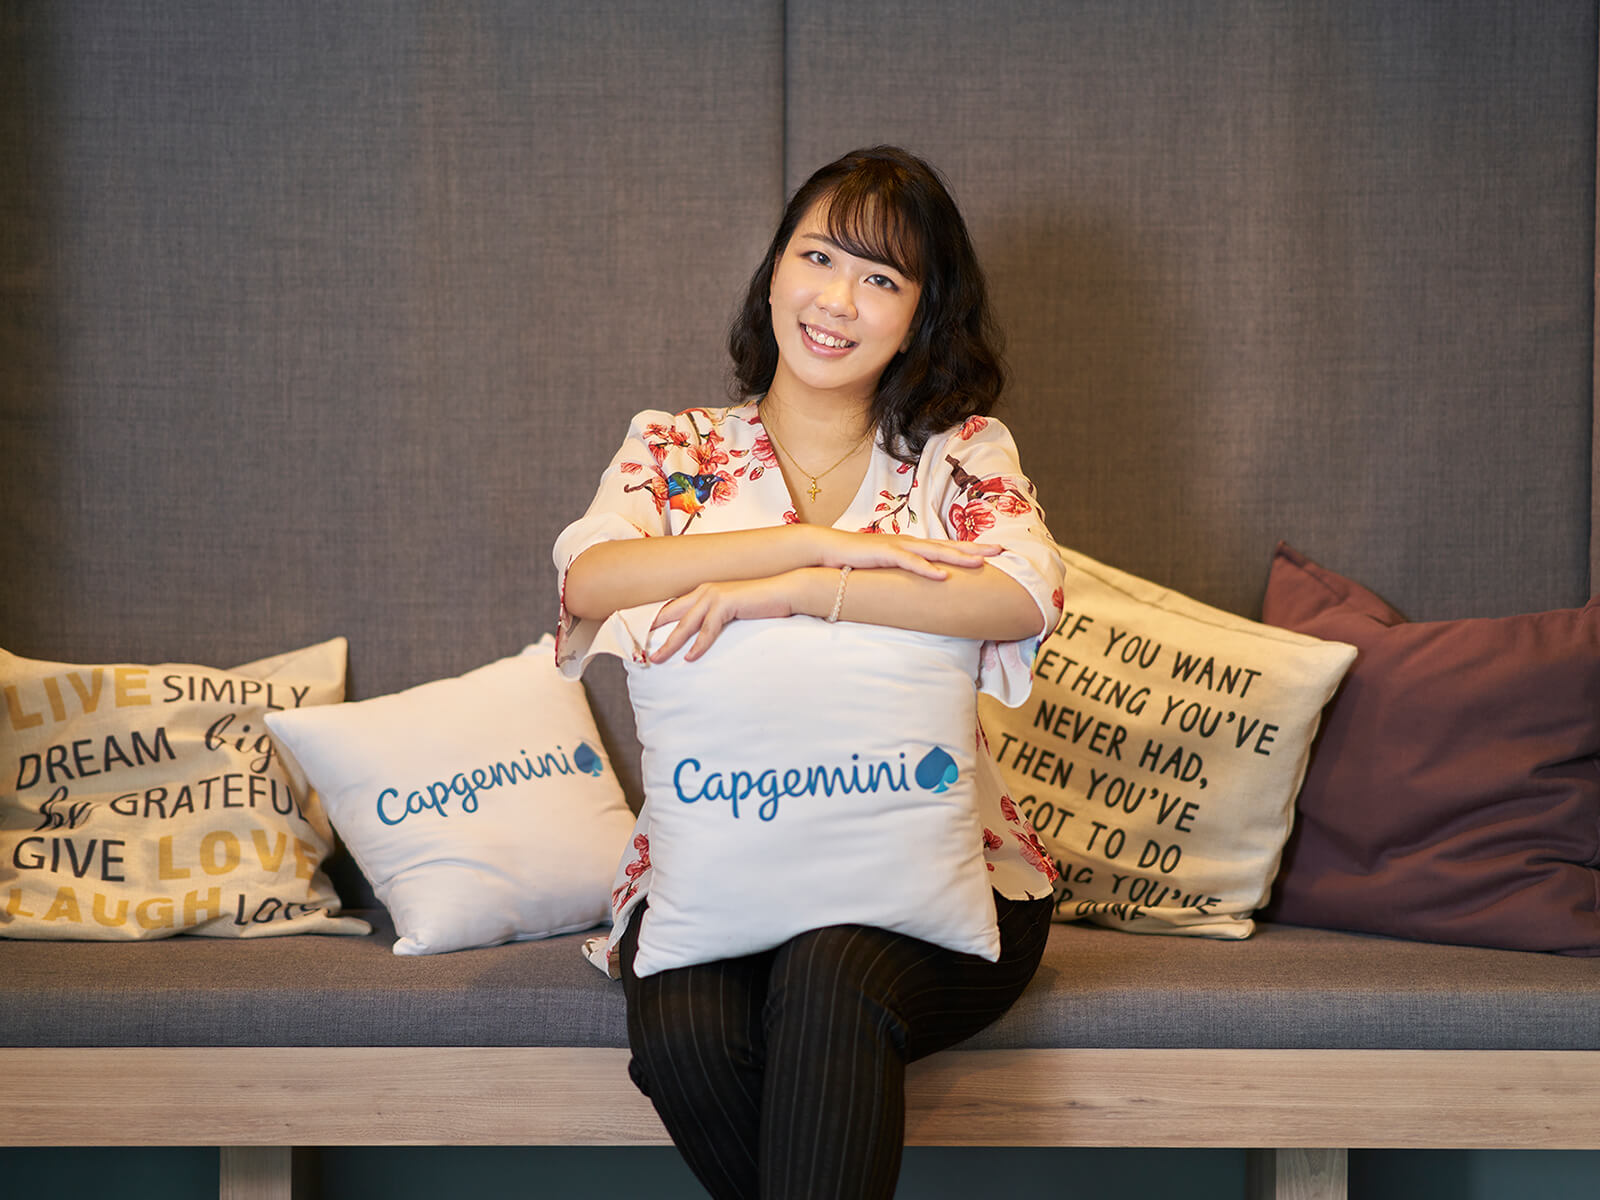 DigiPen (Singapore) graduate Sherilyn Kan smiles in an alcove with pillows